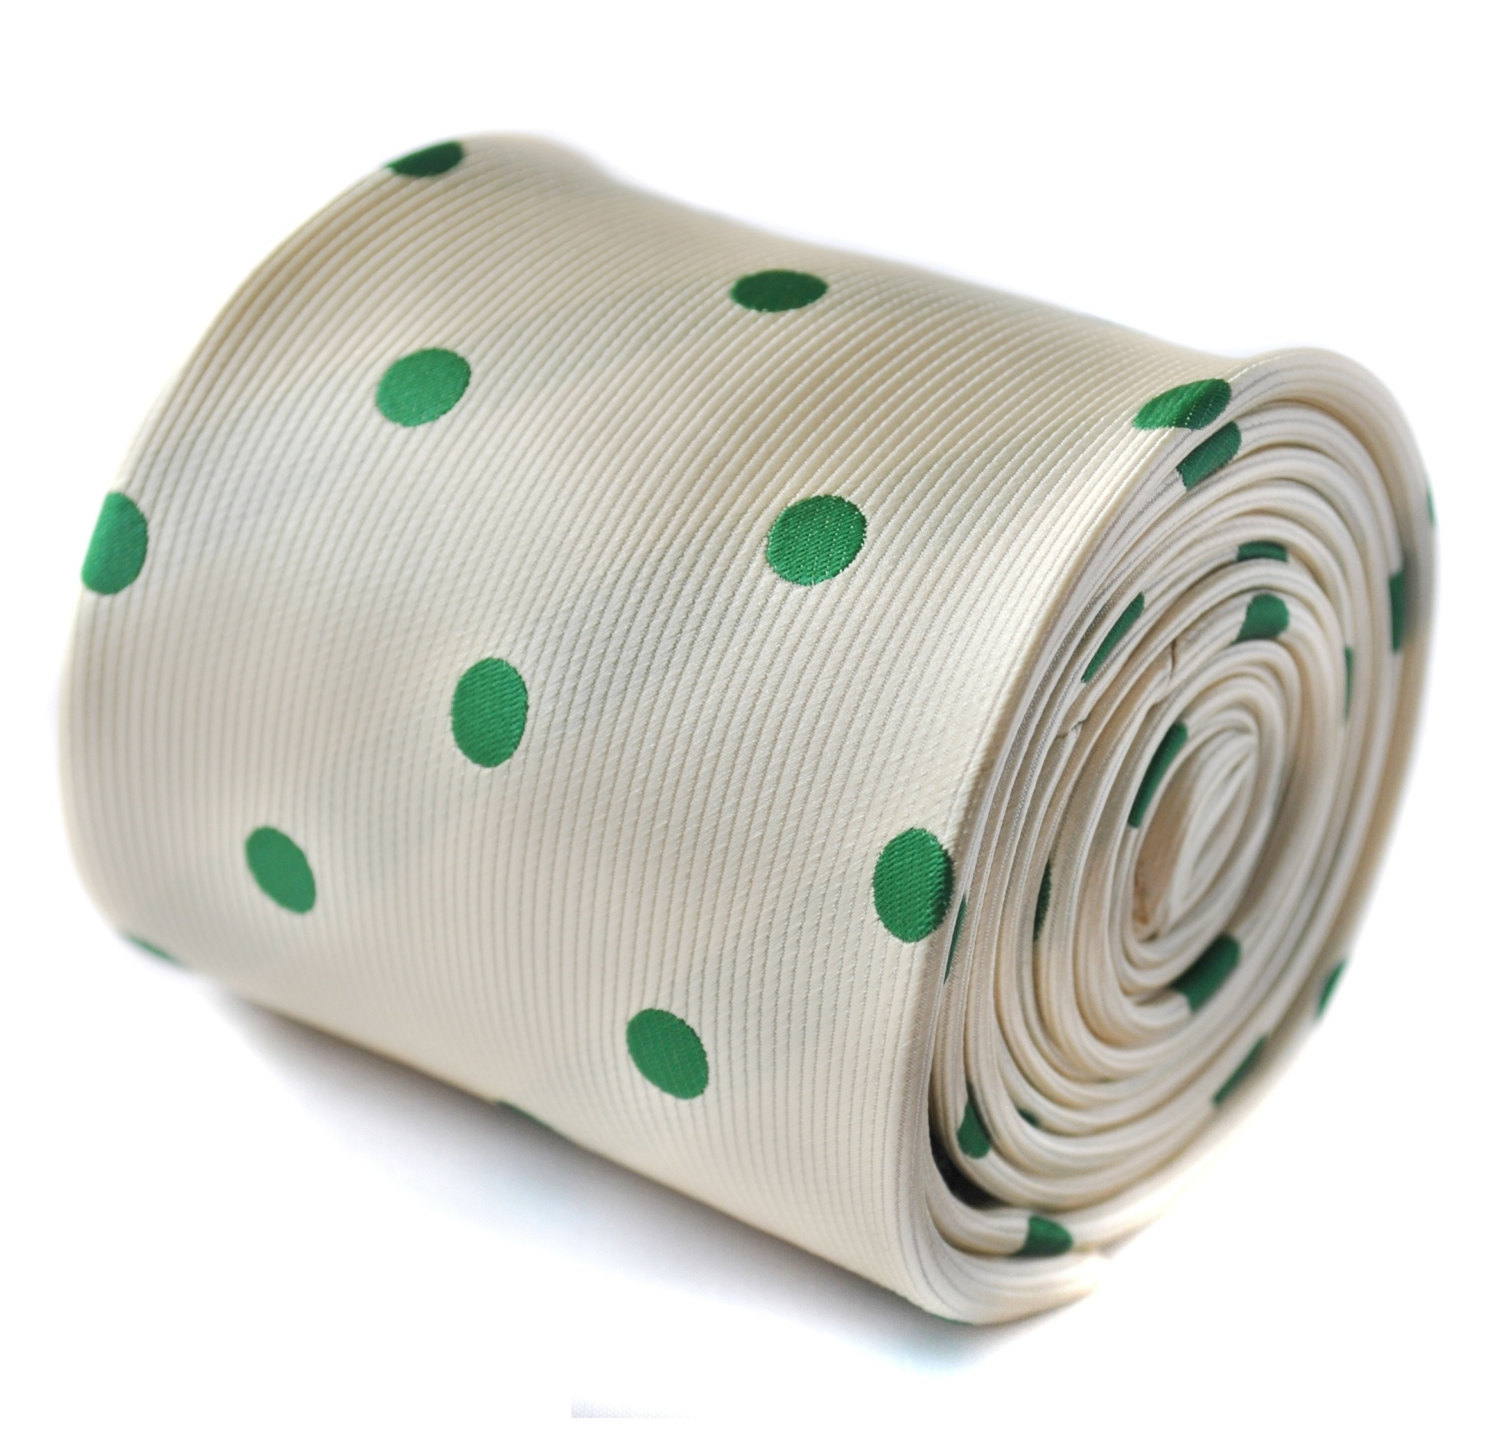 ivory and green polka spot tie with signature floral design to the rear by Frede